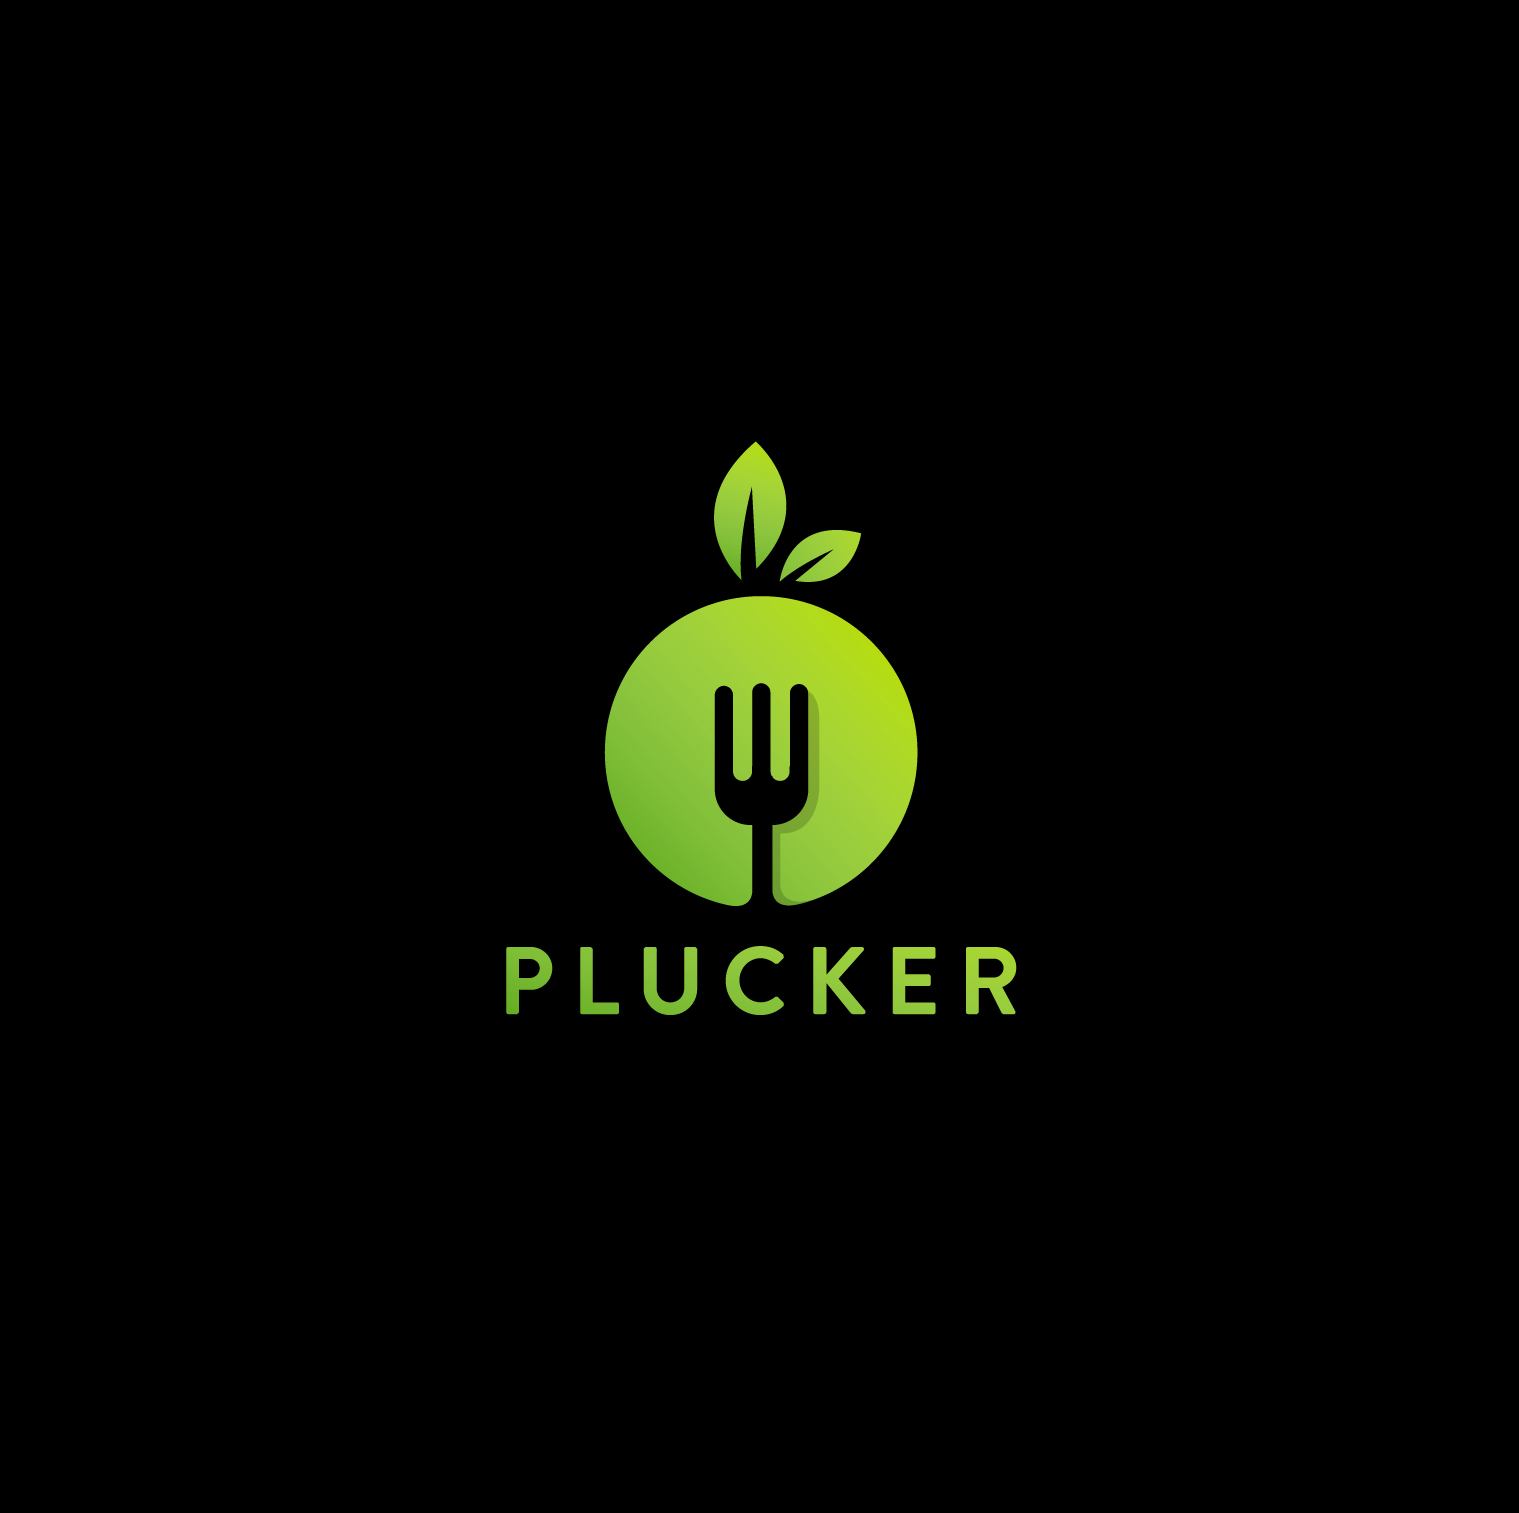 Plucker LLC Launched the First Black-Owned Food Delivery and Grocery Service in New York and California